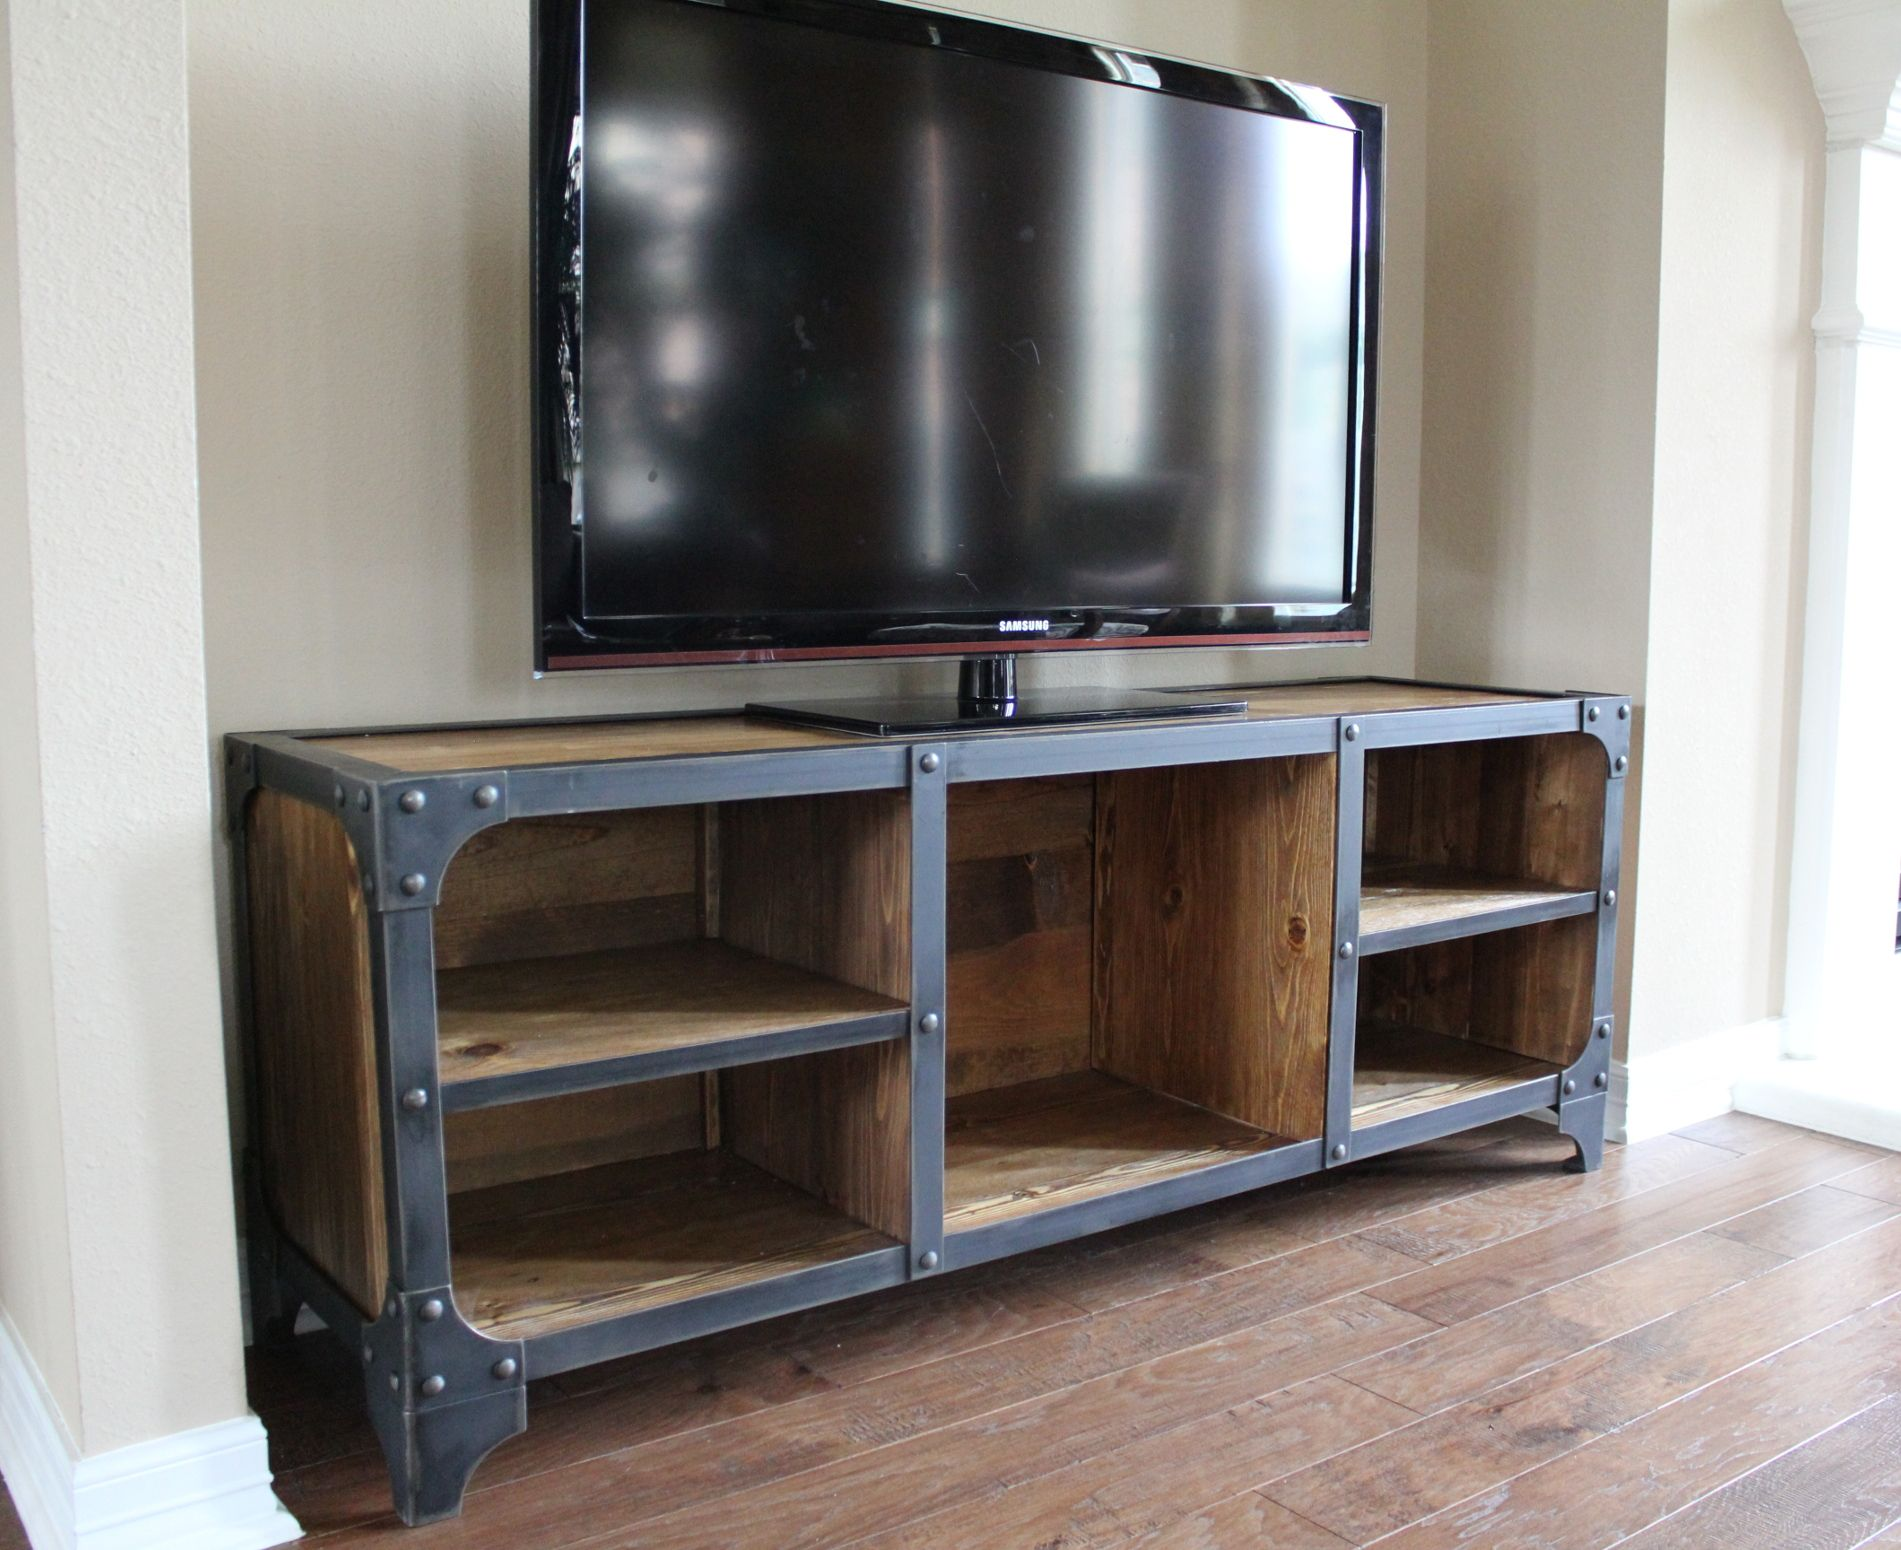 modern industrial design furniture. View Our Work Discover Story Modern Life .Industrial Style We Are Small Houston Area Shop That Specializes In Handmade Industrial Furniture Made Design